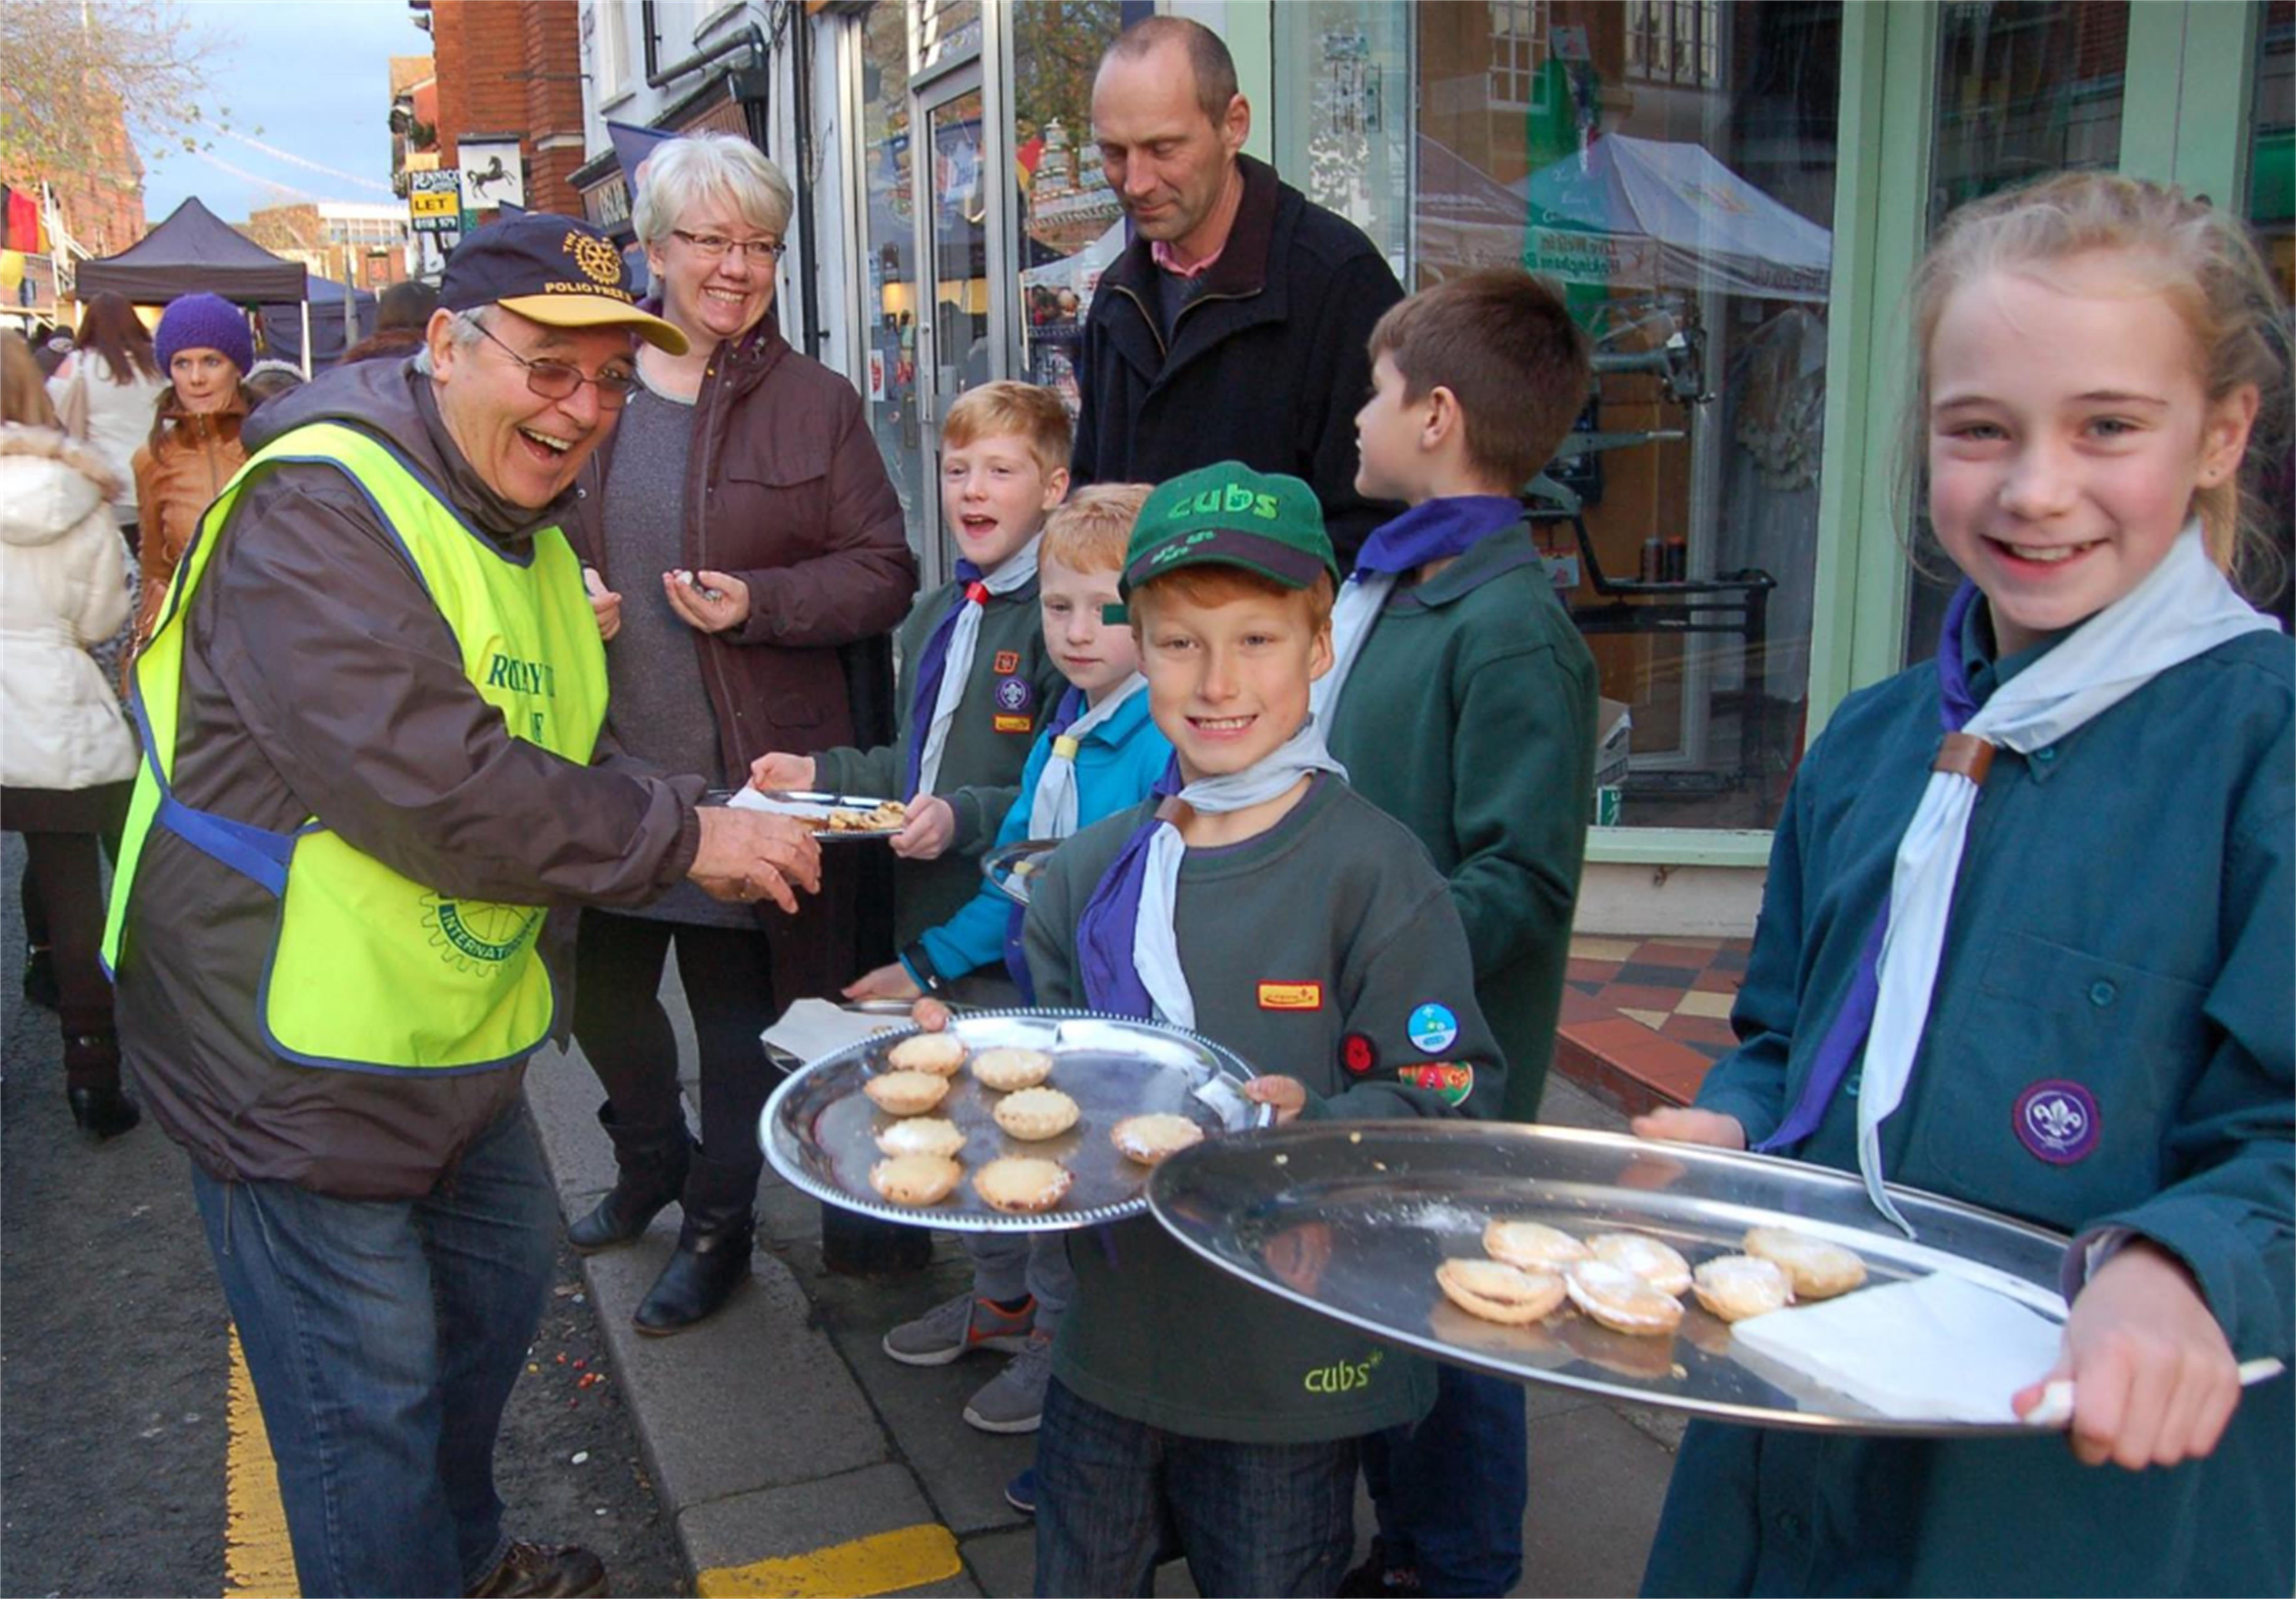 Charities that we support - Cubs, scouts and guides